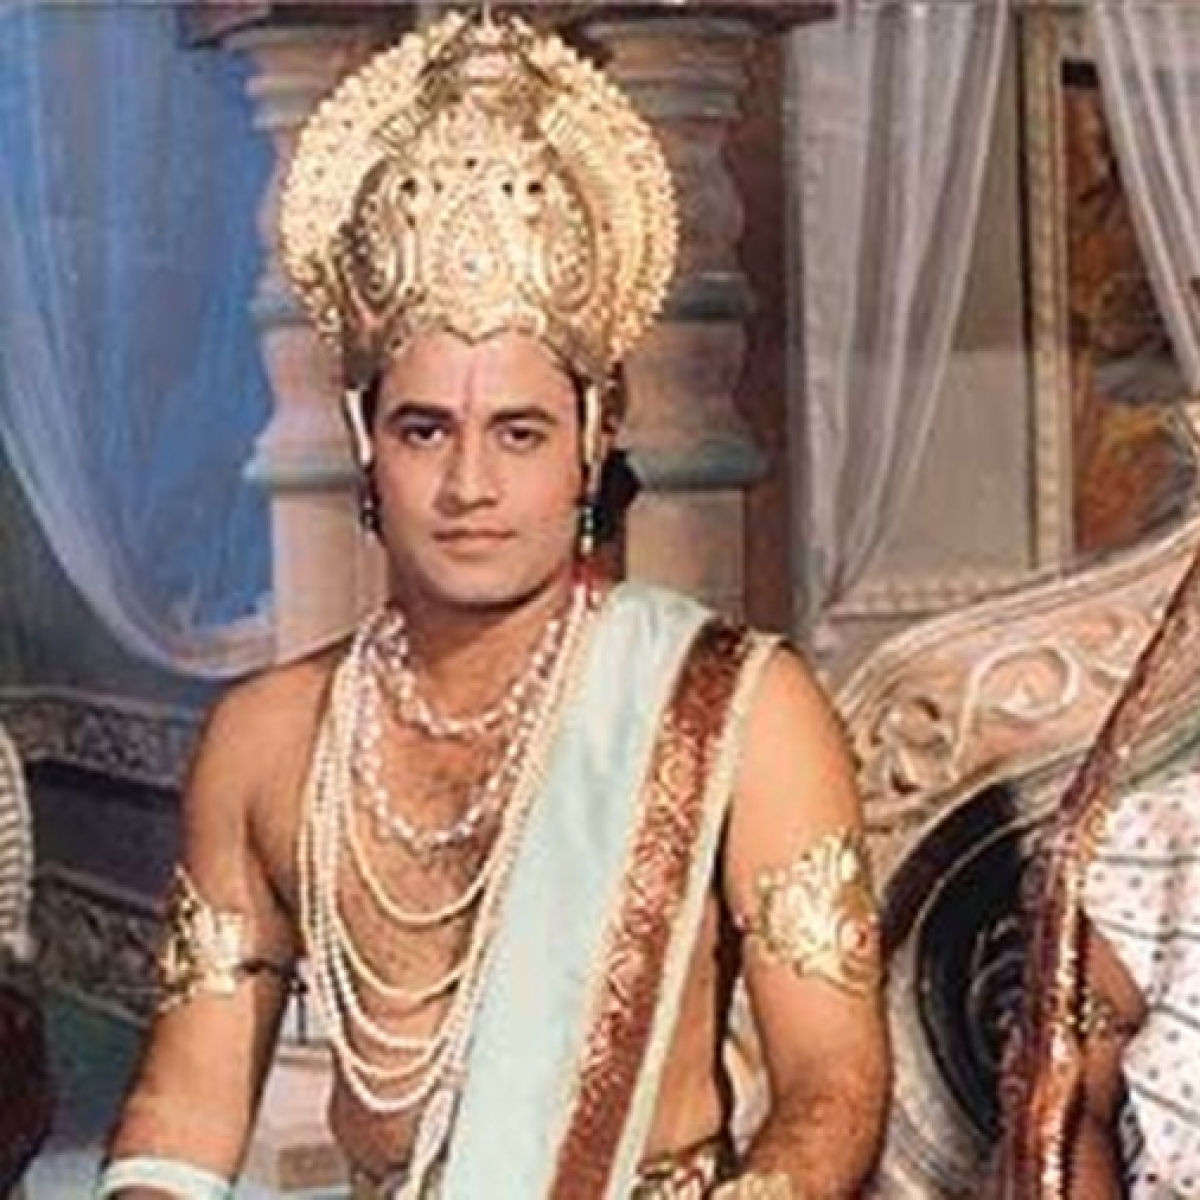 'Stop disrespecting our culture': Indians furious after Twitter calls Ramayan 'sensitive' content